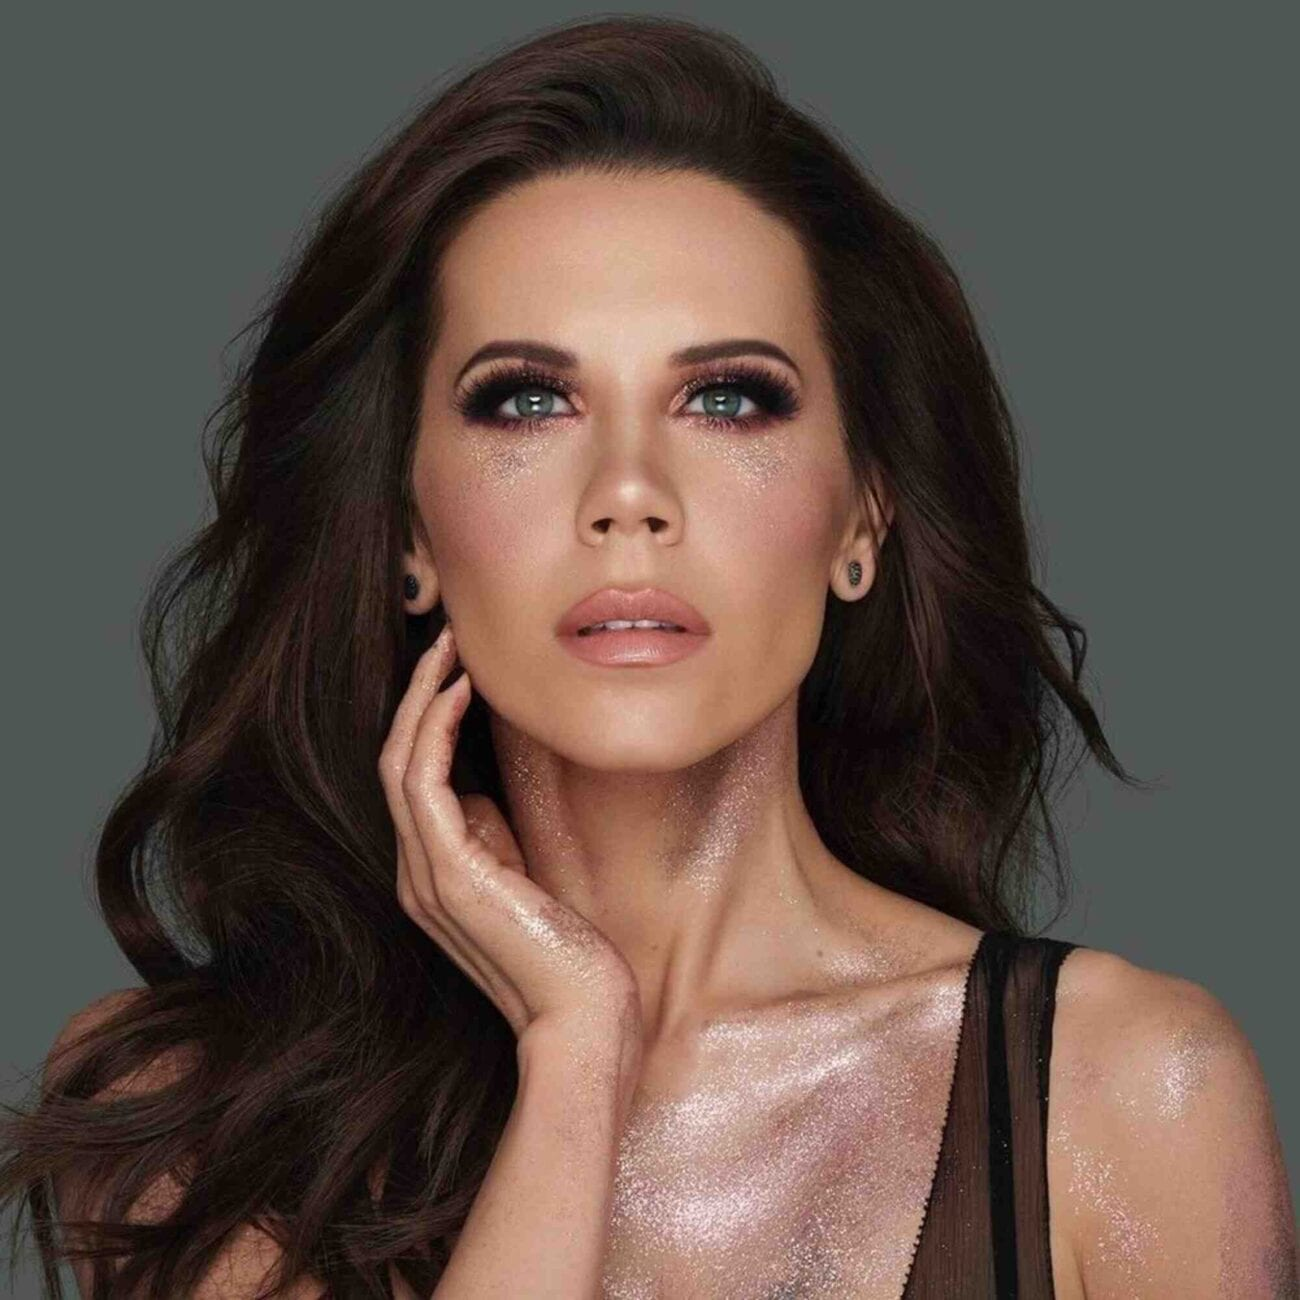 After a very long year break, it seems that Tati Westbrook is finally ready to start over again. Does she address James Charles in her YouTube video?